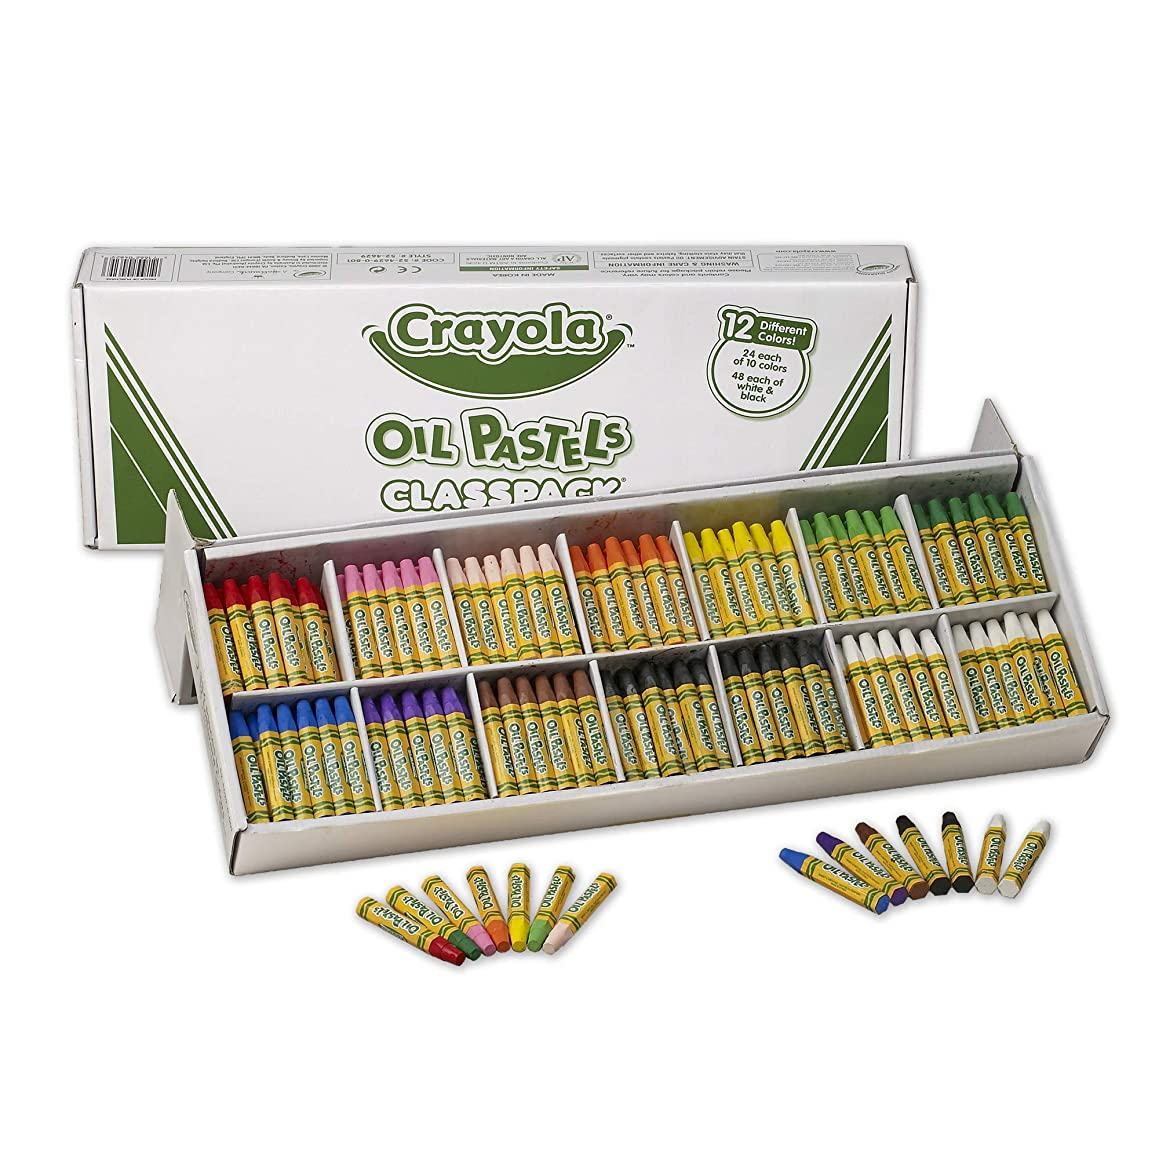 Crayola Oil Pastels Classpack, 12 Brilliant Opaque Colors (336Count) Large Hexagonal Shape Pastels, Ideal for Kids 3 & Up, Non-Toxic, Blendable, Strong, Long Lasting Sticks, Bulk Value Classroom Pack